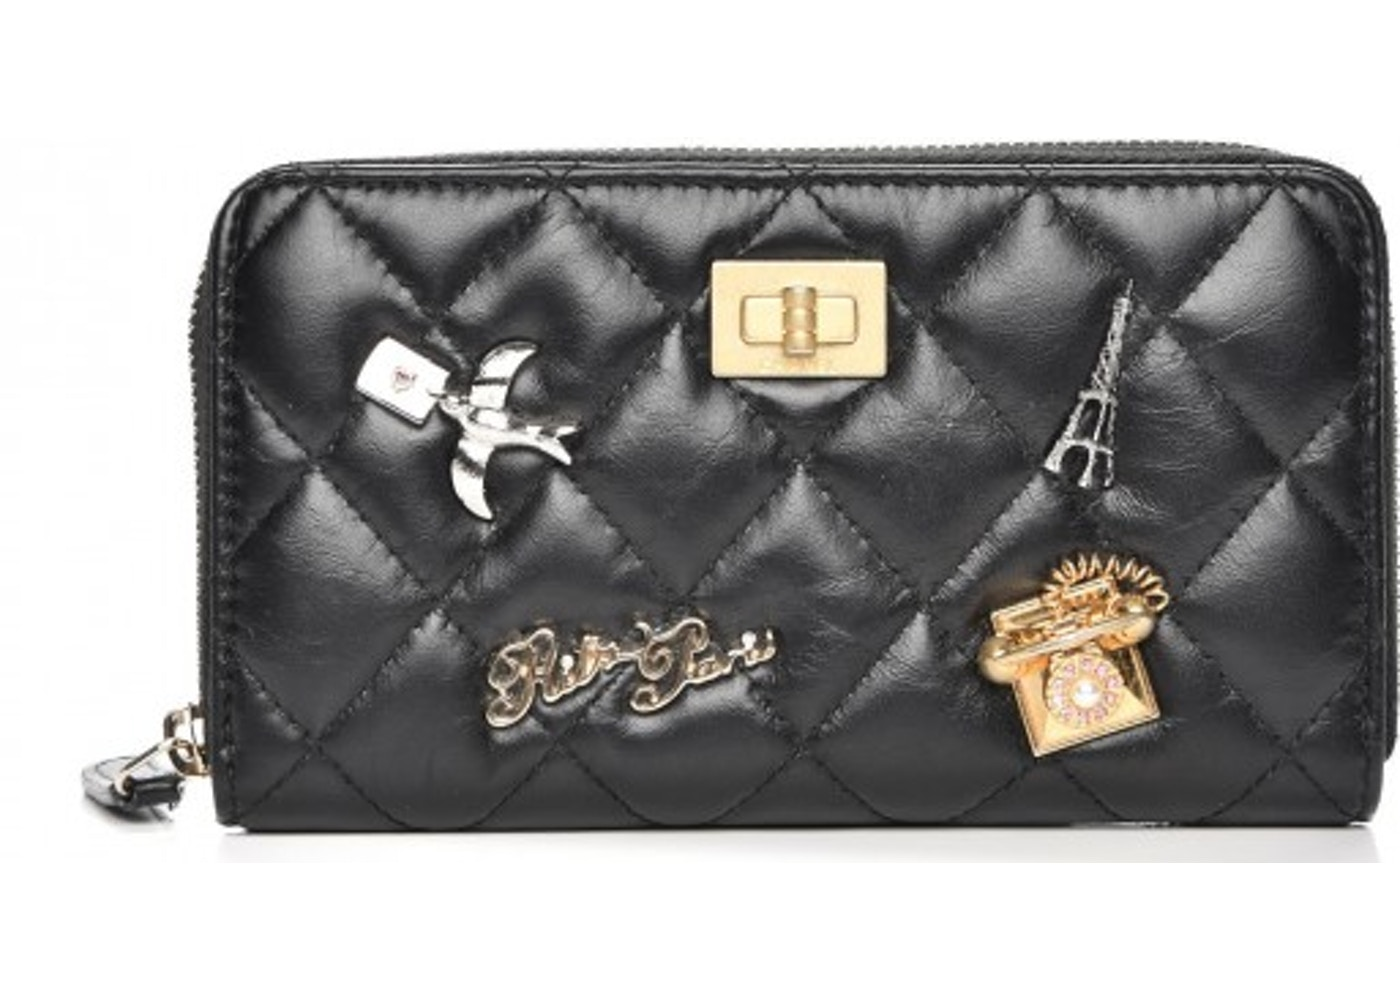 42e45644a4fe Chanel Reissue 2.55 Zip Around Wallet Quilted Diamond Lucky Charms Casino  Small Black. Quilted Diamond Lucky Charms Casino Small Black